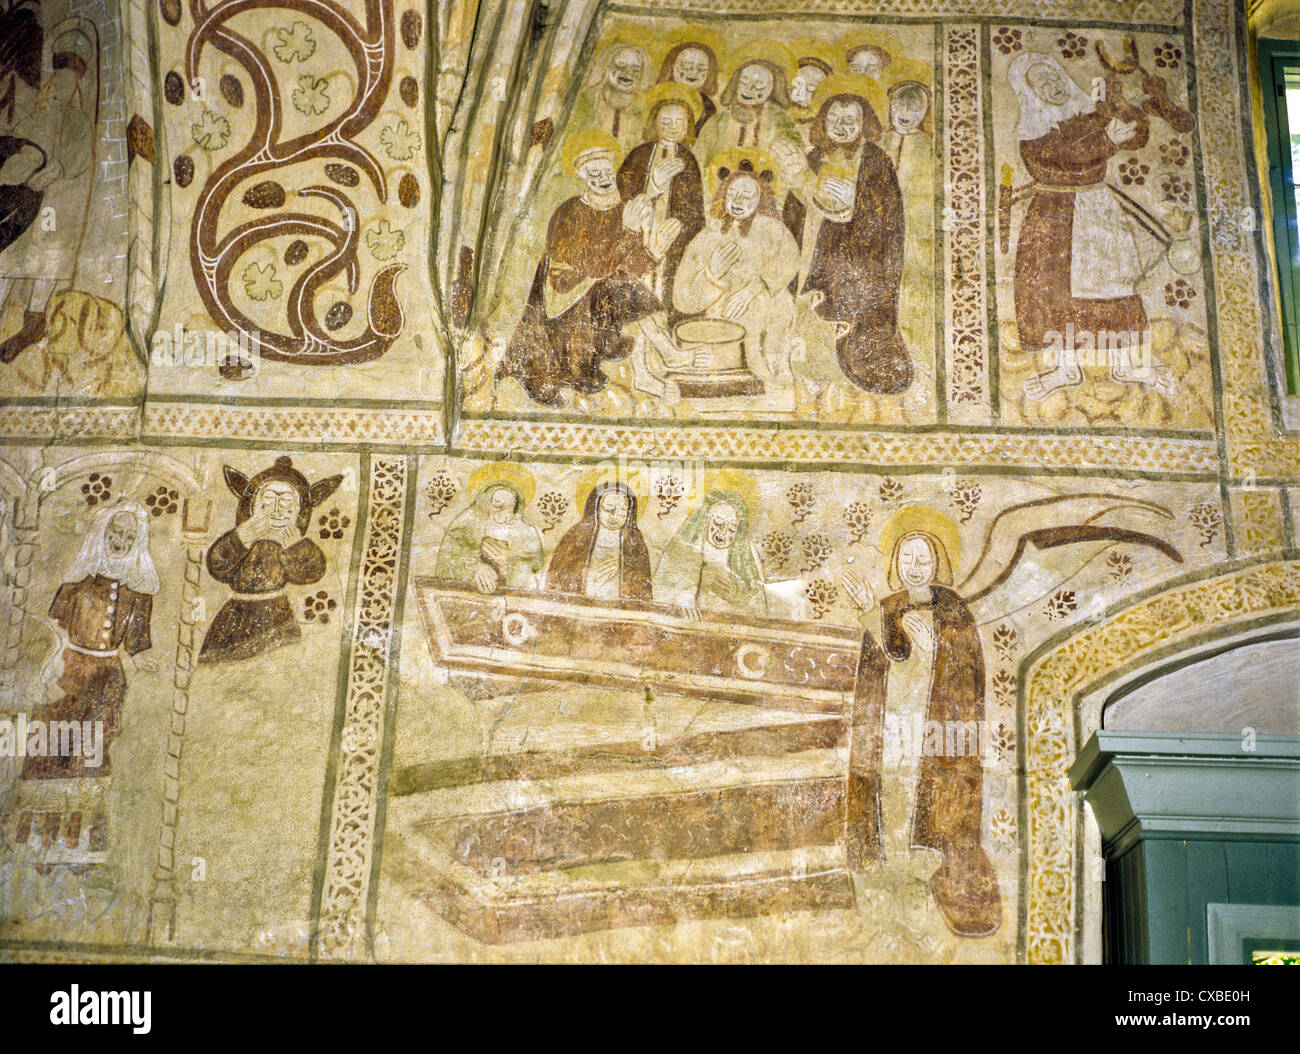 Wall murals in the 15th century espoo cathedral espoo finland wall murals in the 15th century espoo cathedral espoo finland amipublicfo Image collections